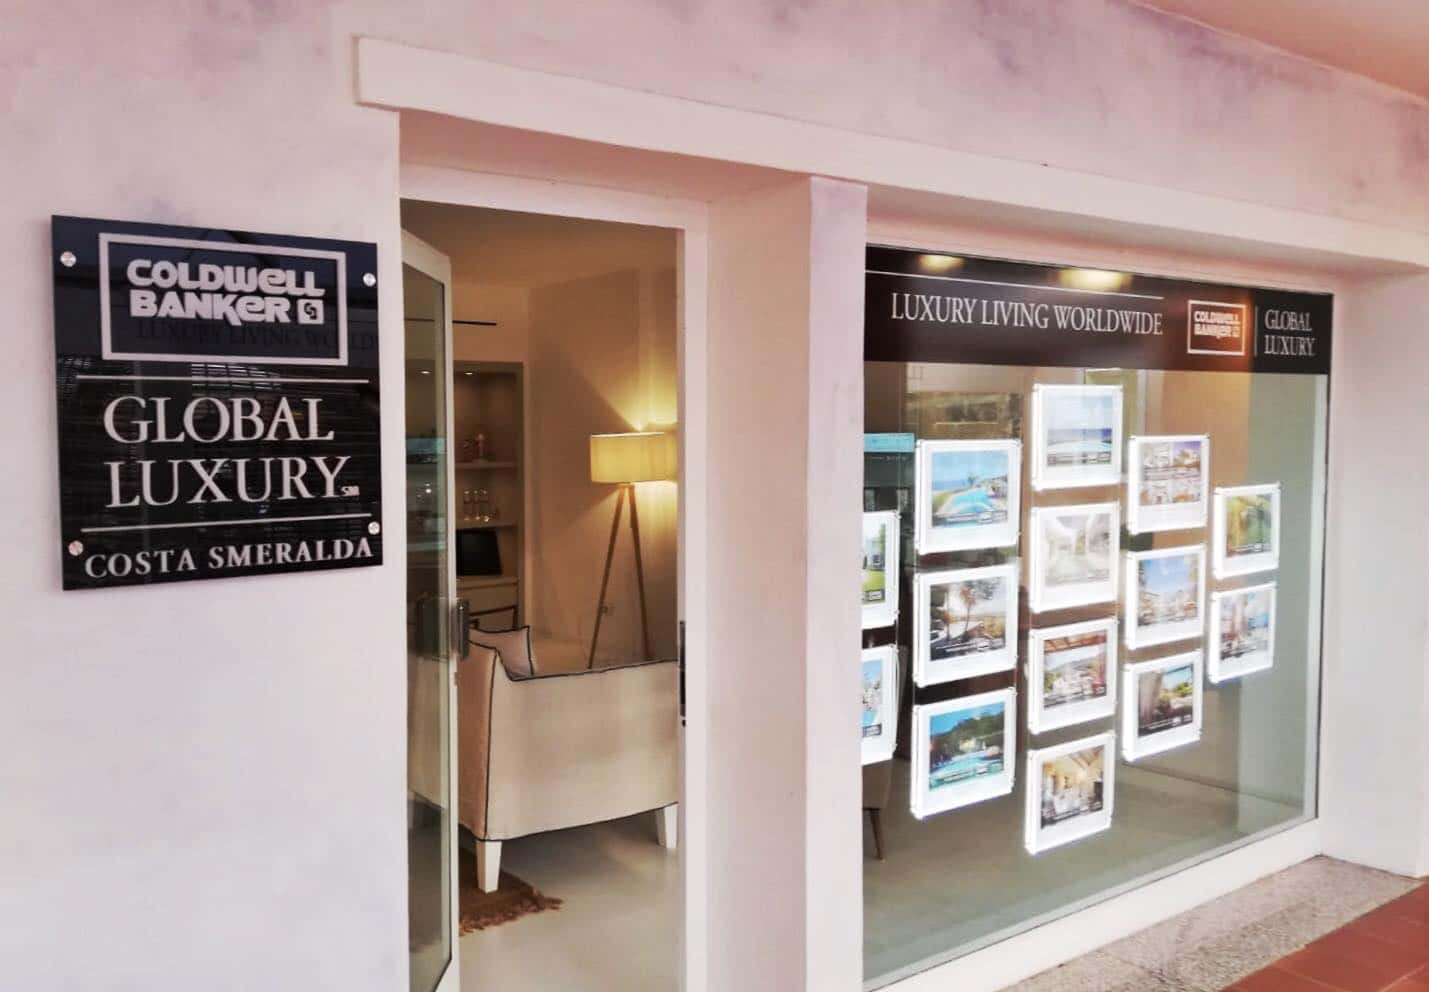 coldwell banker global luxury